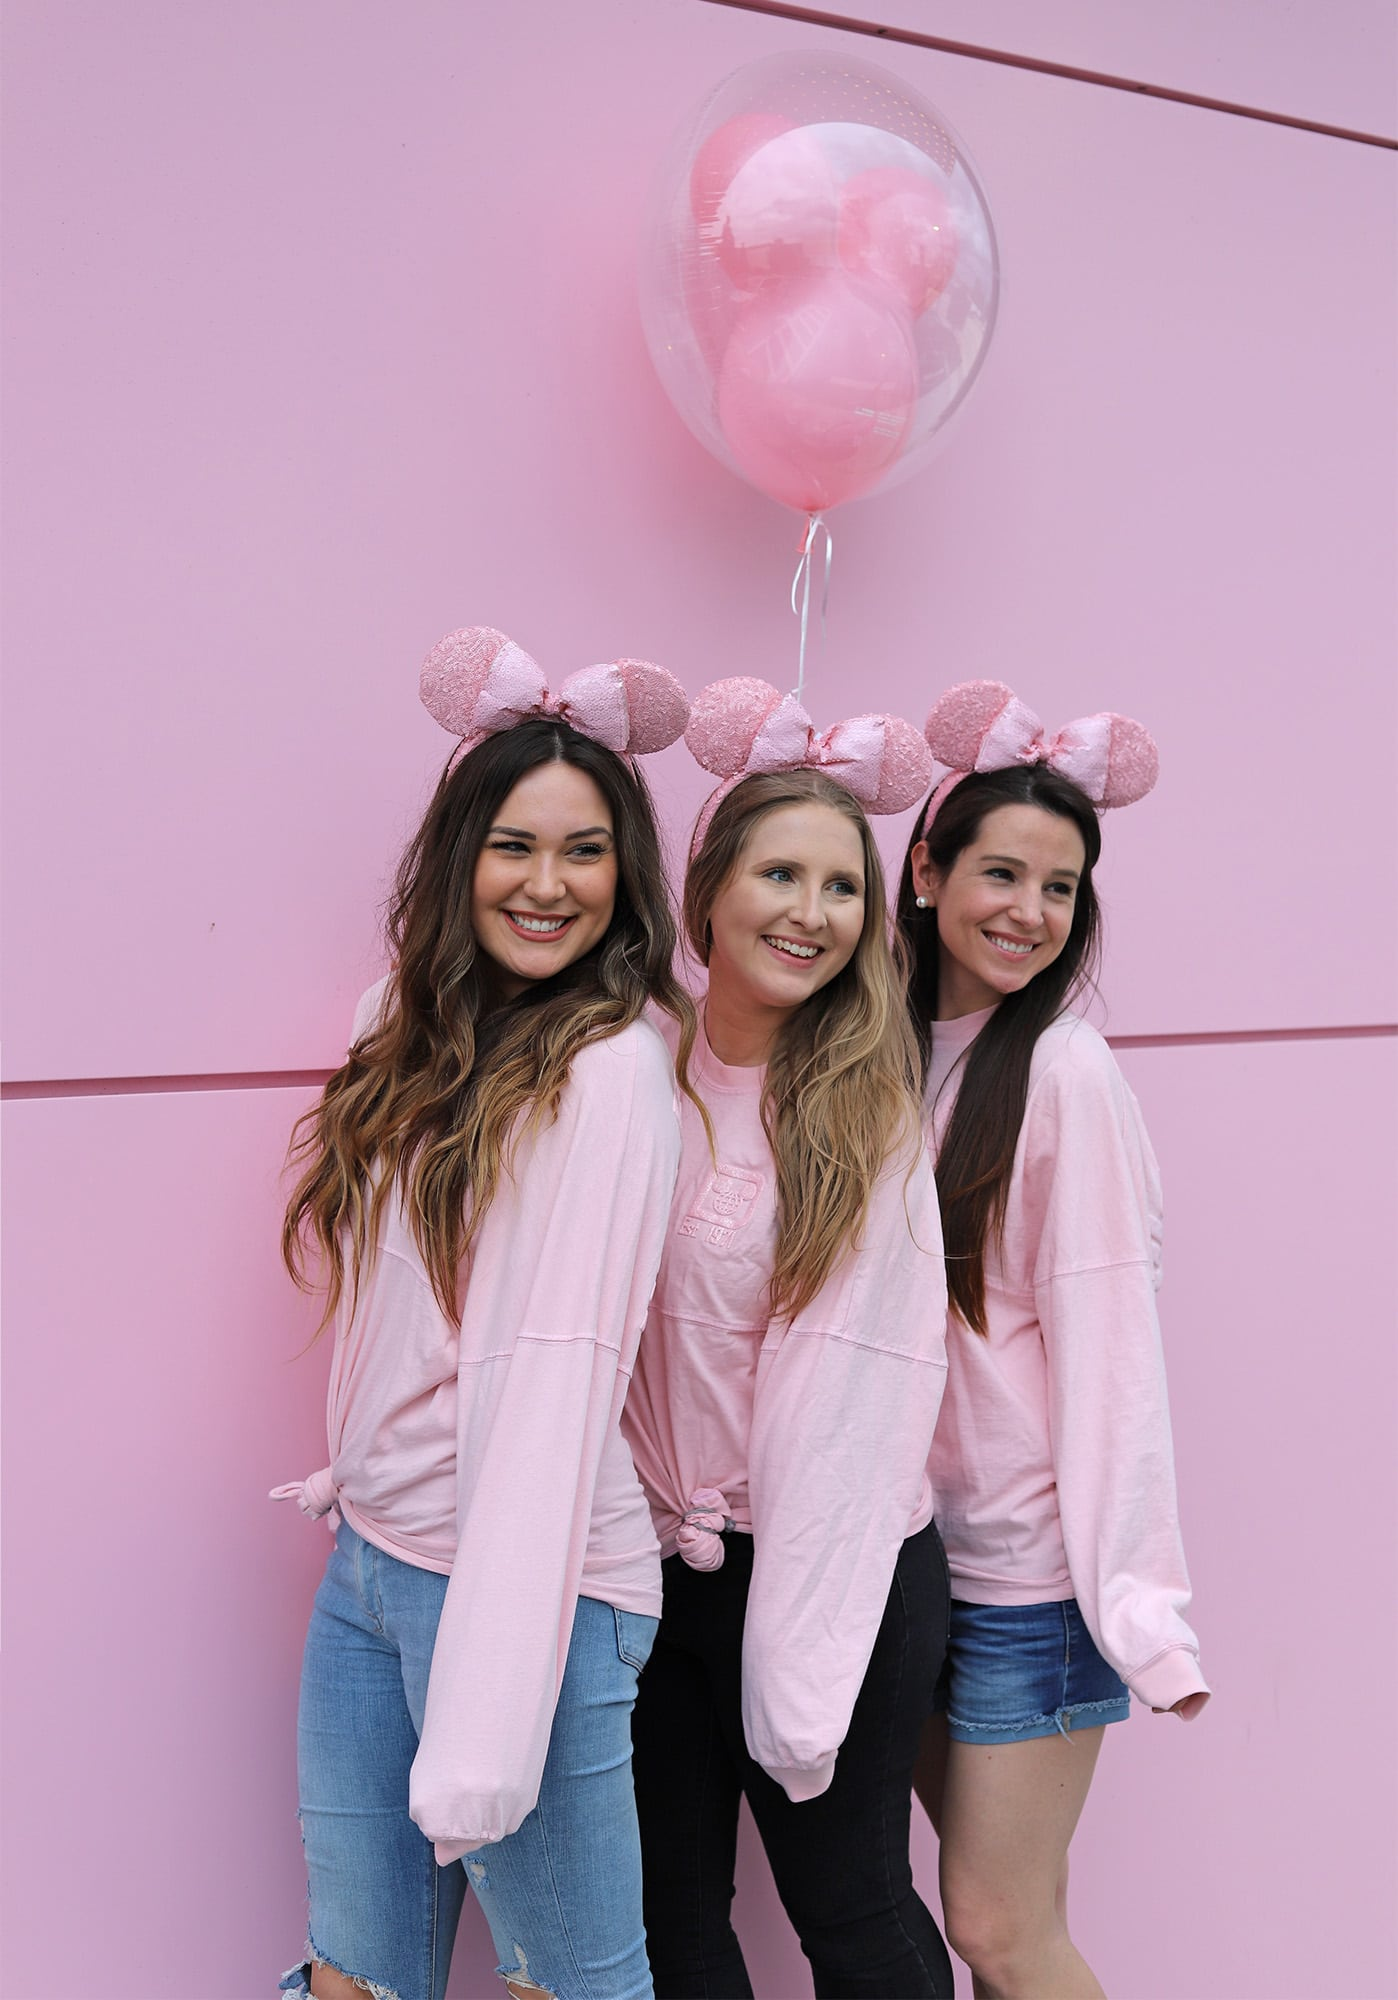 disney magic kingdom trip with best friends | Disney trip | travel advice | Dove spray |Mash elle beauty blogger | matching pink shirts | pink minnie ears | pink balloon